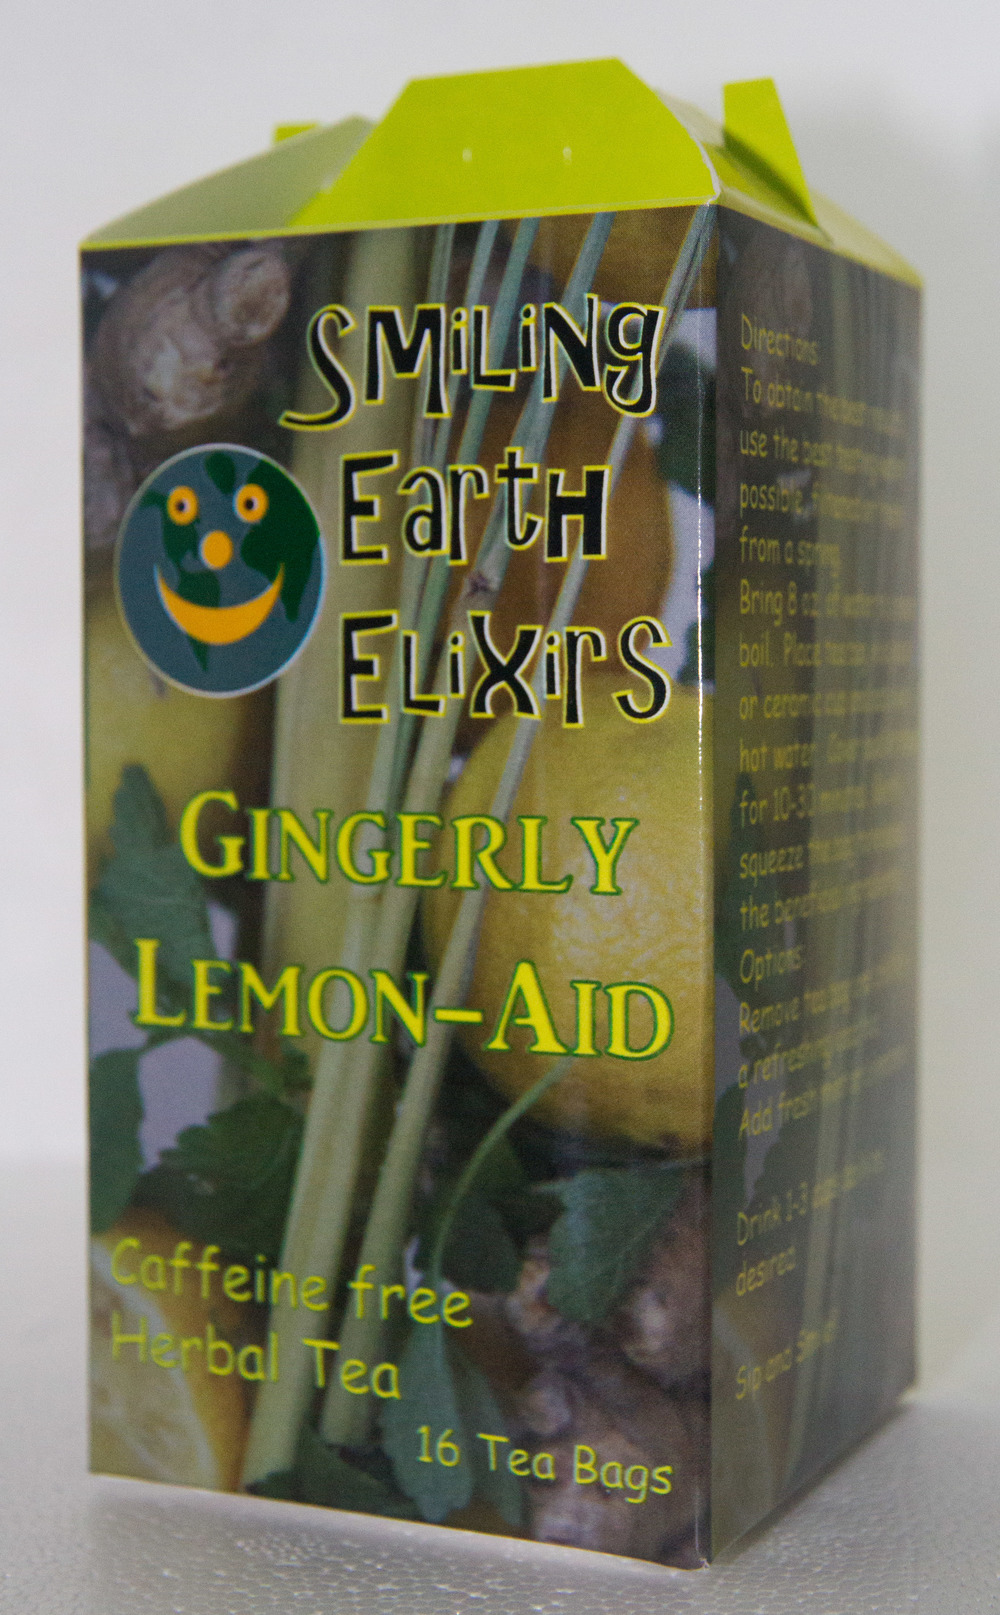 Just like the name implies, a blend of ginger and lemon-y herbs such as Lemon Balm, Lemon Verbena, Lemon, Lemon Peel and Lemongrass.  Aids digestion, helps with nausea and helps the body slow down just a little bit.  A wonderful warm tea for relaxing in the evening, or brew up a bunch and put it in the fridge for a cool refreshing afternoon drink.